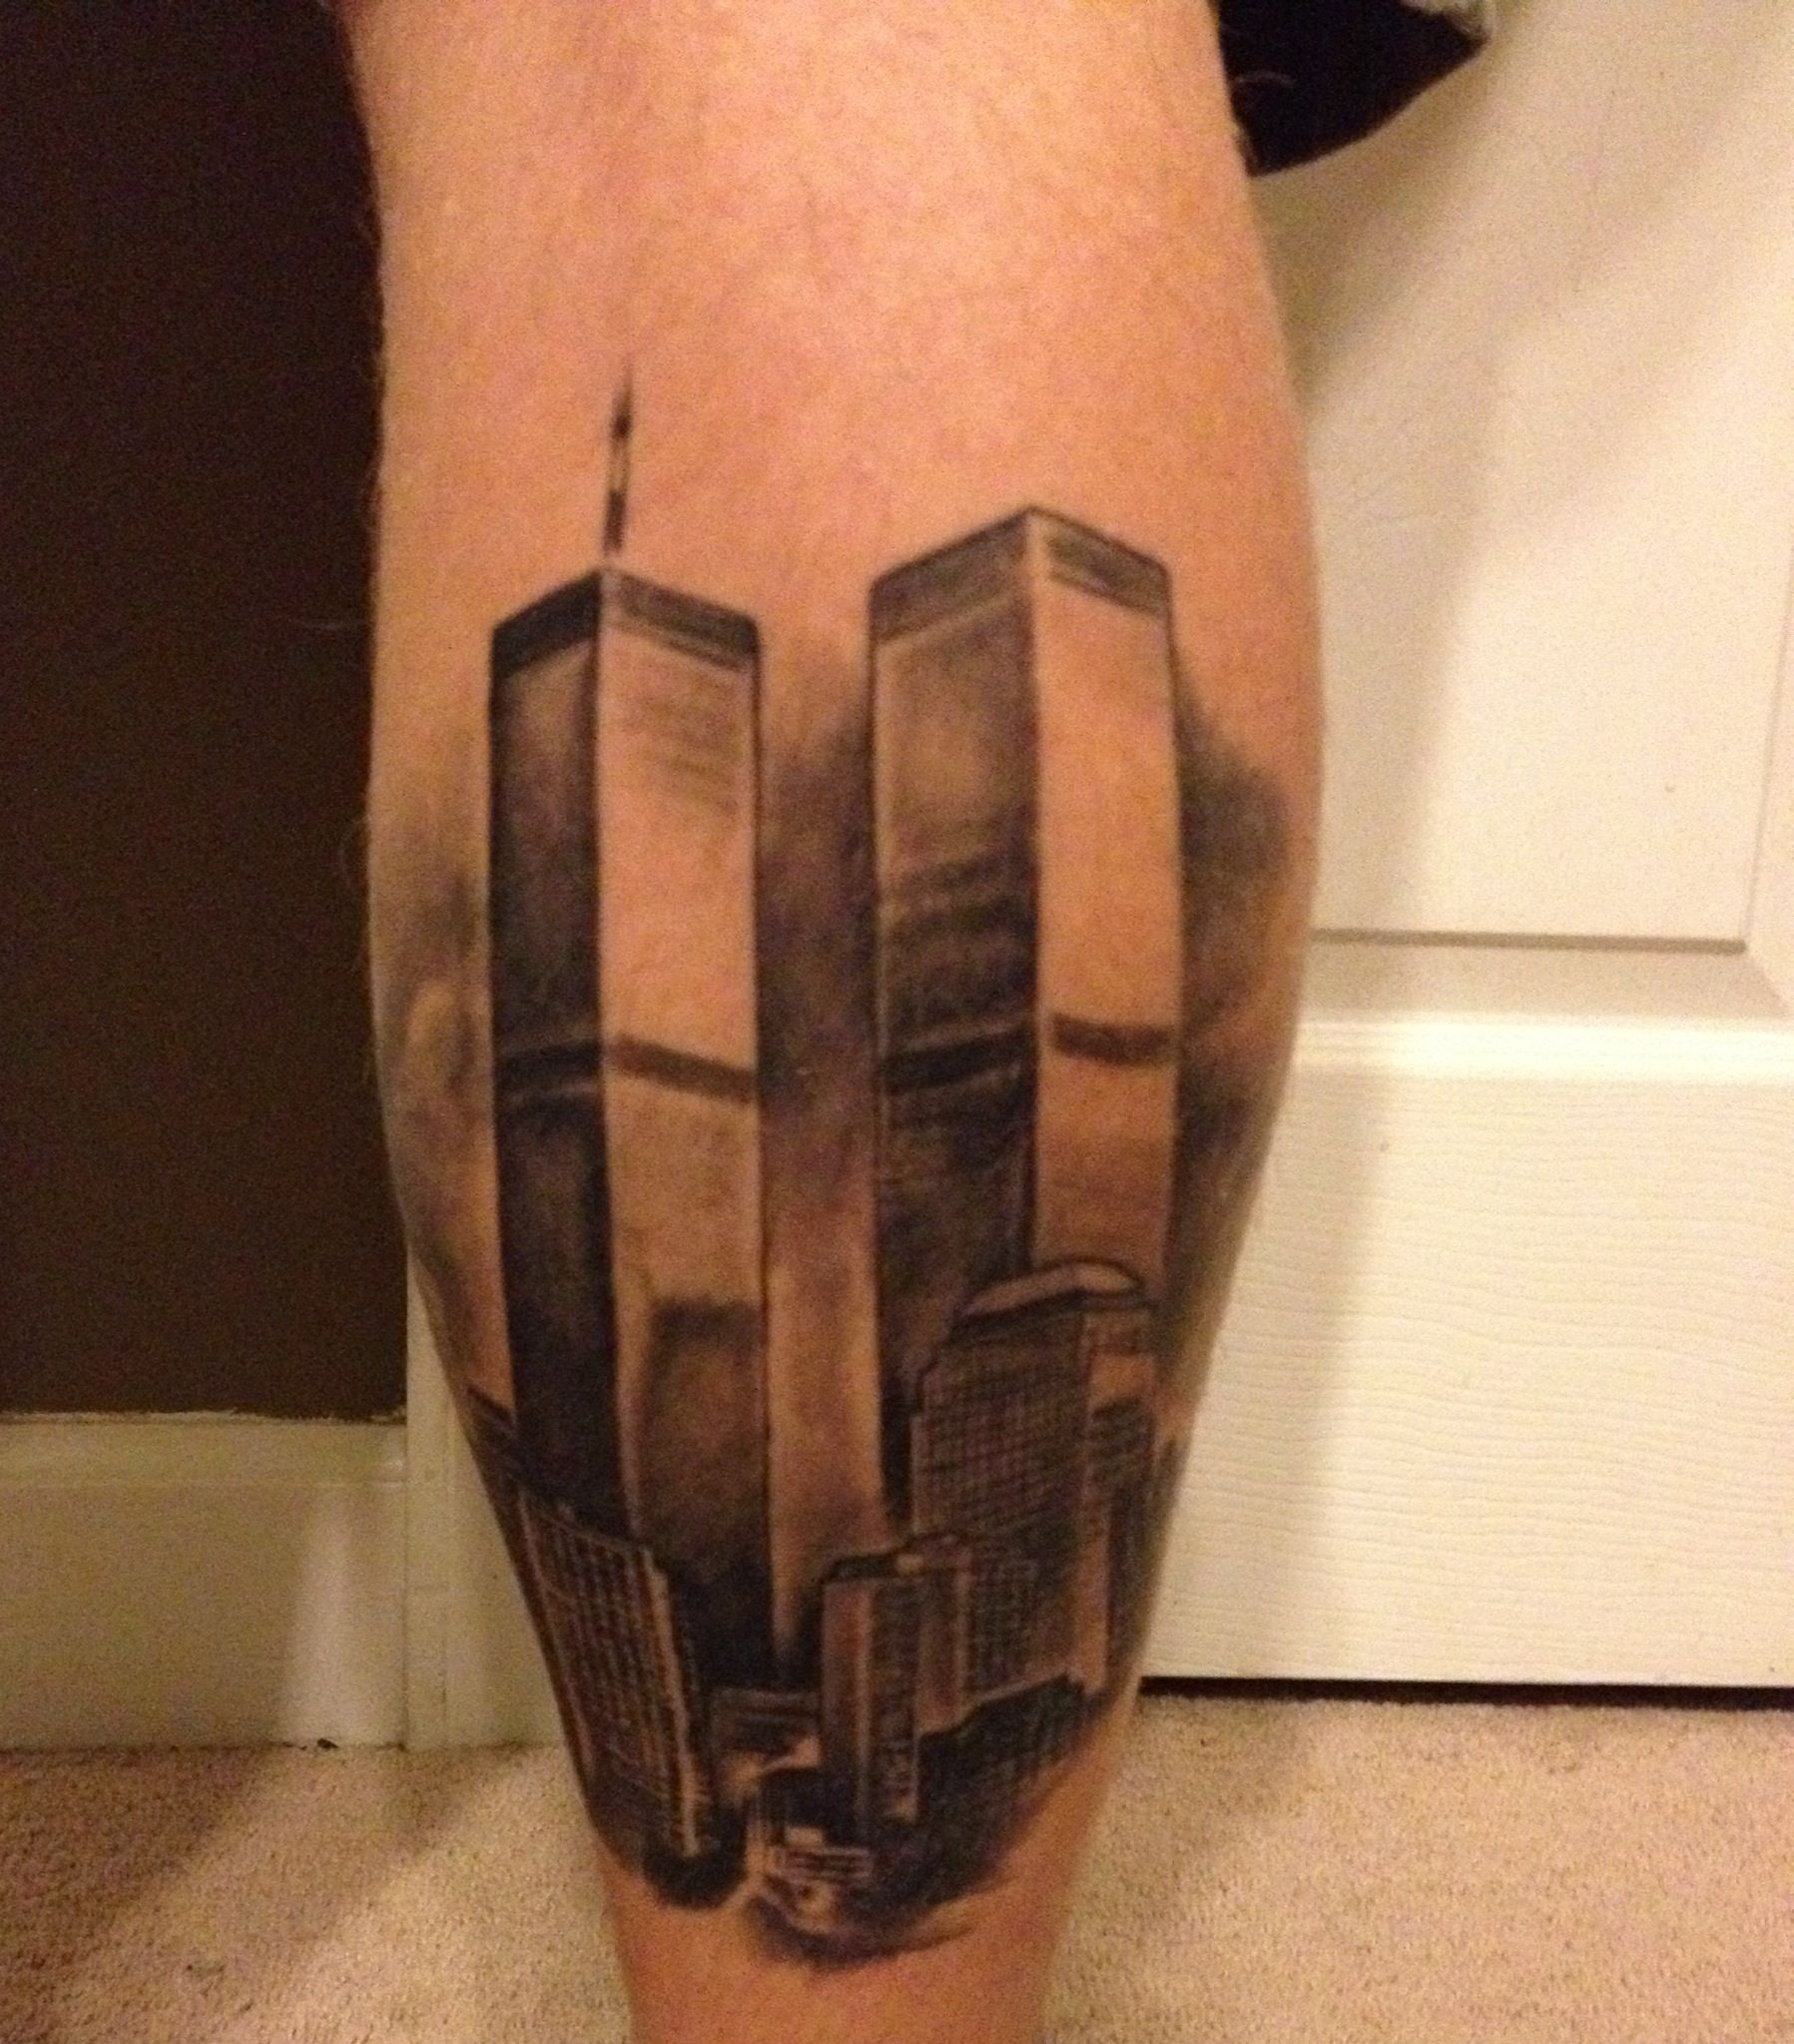 Twin Tower Tattoo 9 11 Tattoos Tattoos Patriotic Ideas And Designs